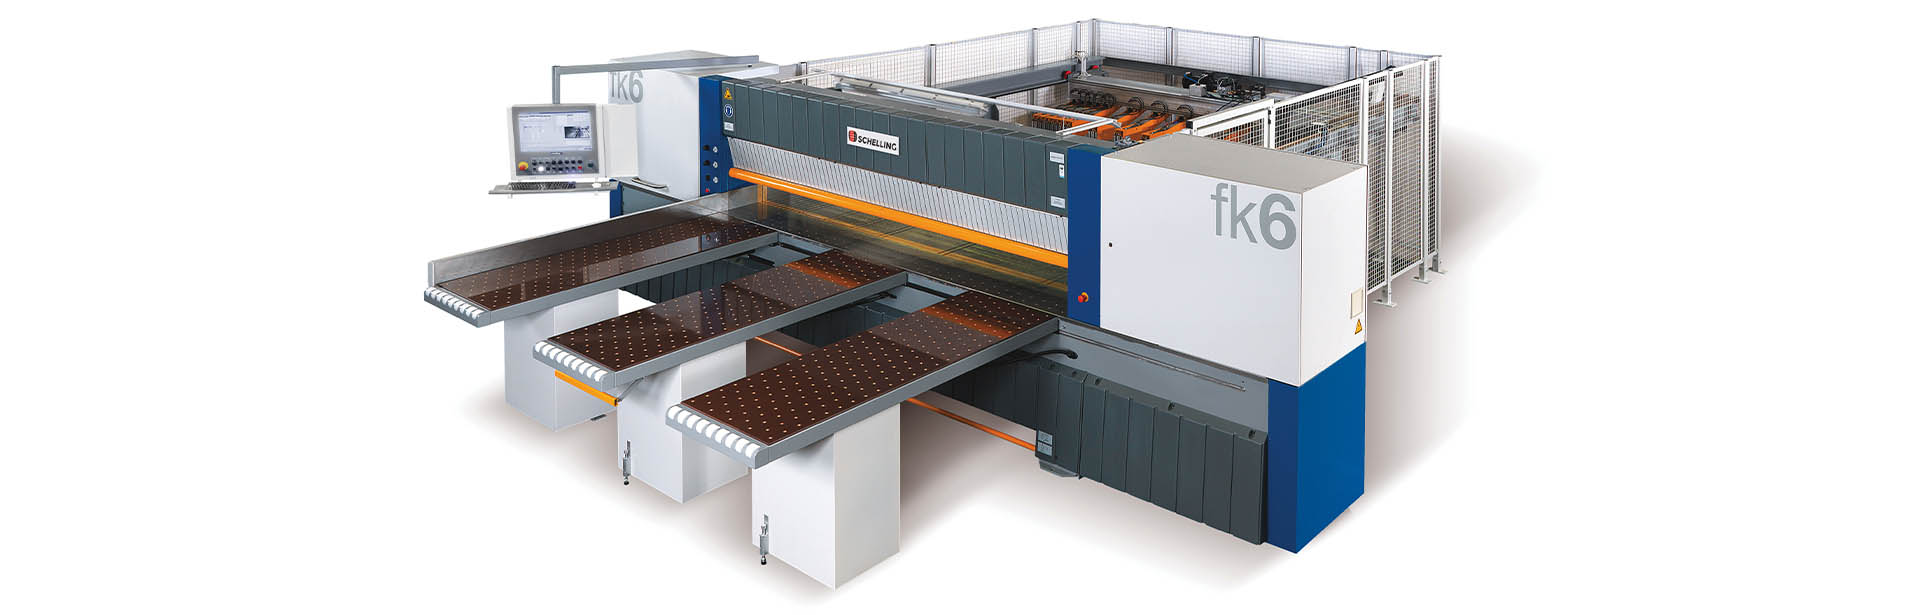 Schelling fk6 Plastic and Composite Panel Saw